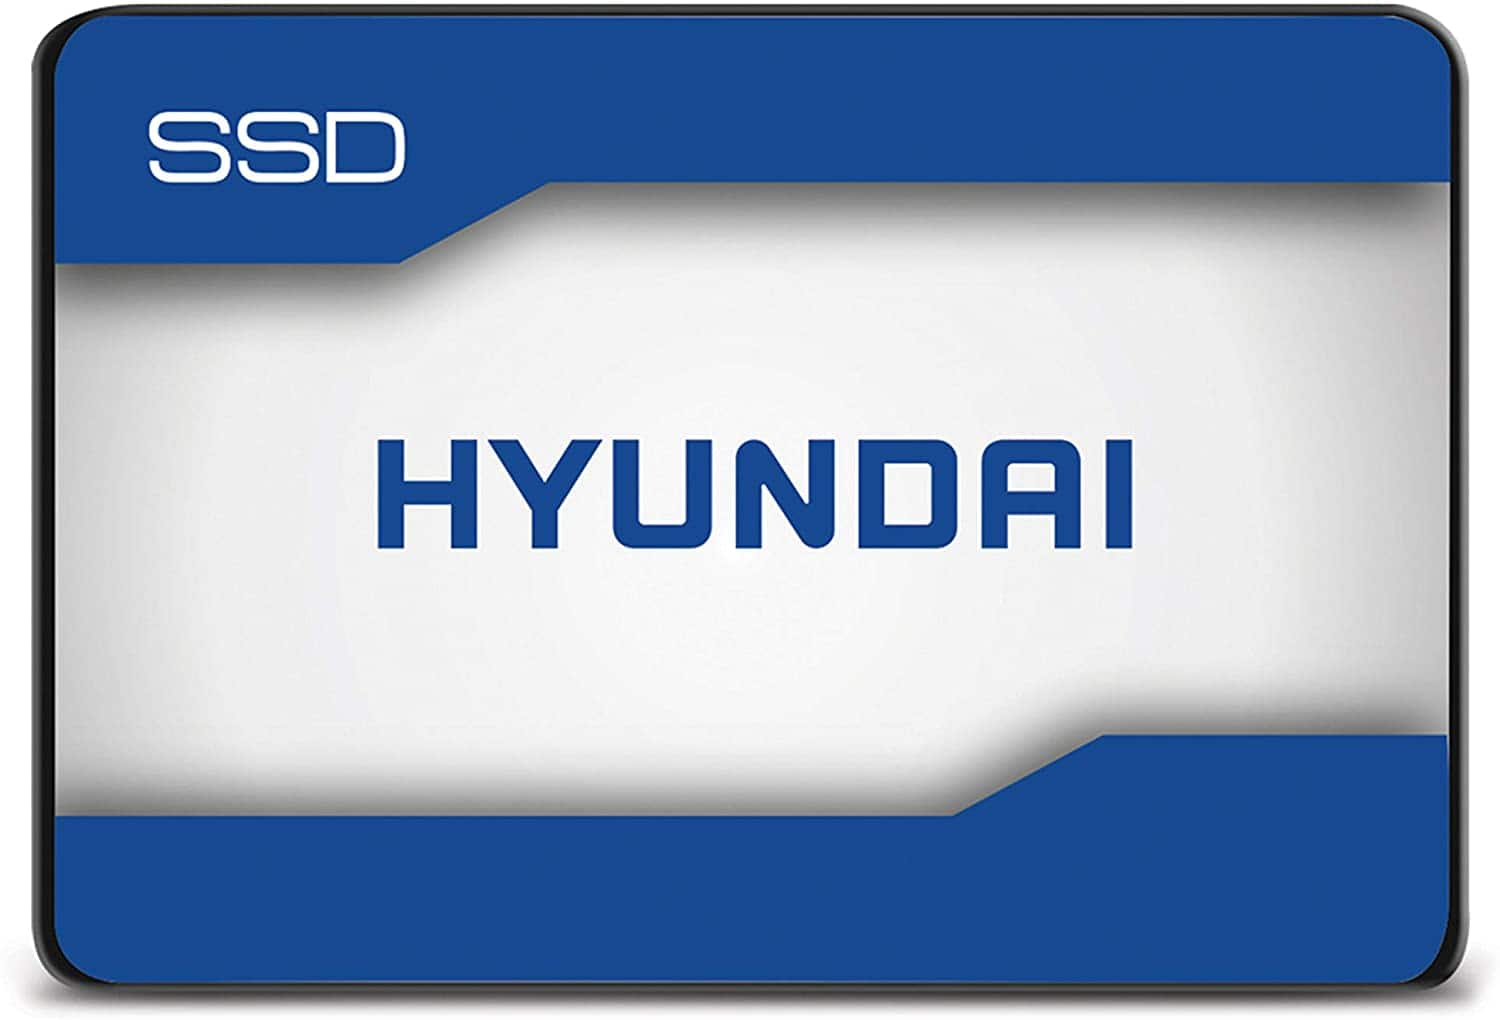 "Hyundai 2.5"" Internal SATA III 3D TLC SSDs on Sale: 960GB for $83.29, 480GB for $45.04 & More @ Amazon.com"